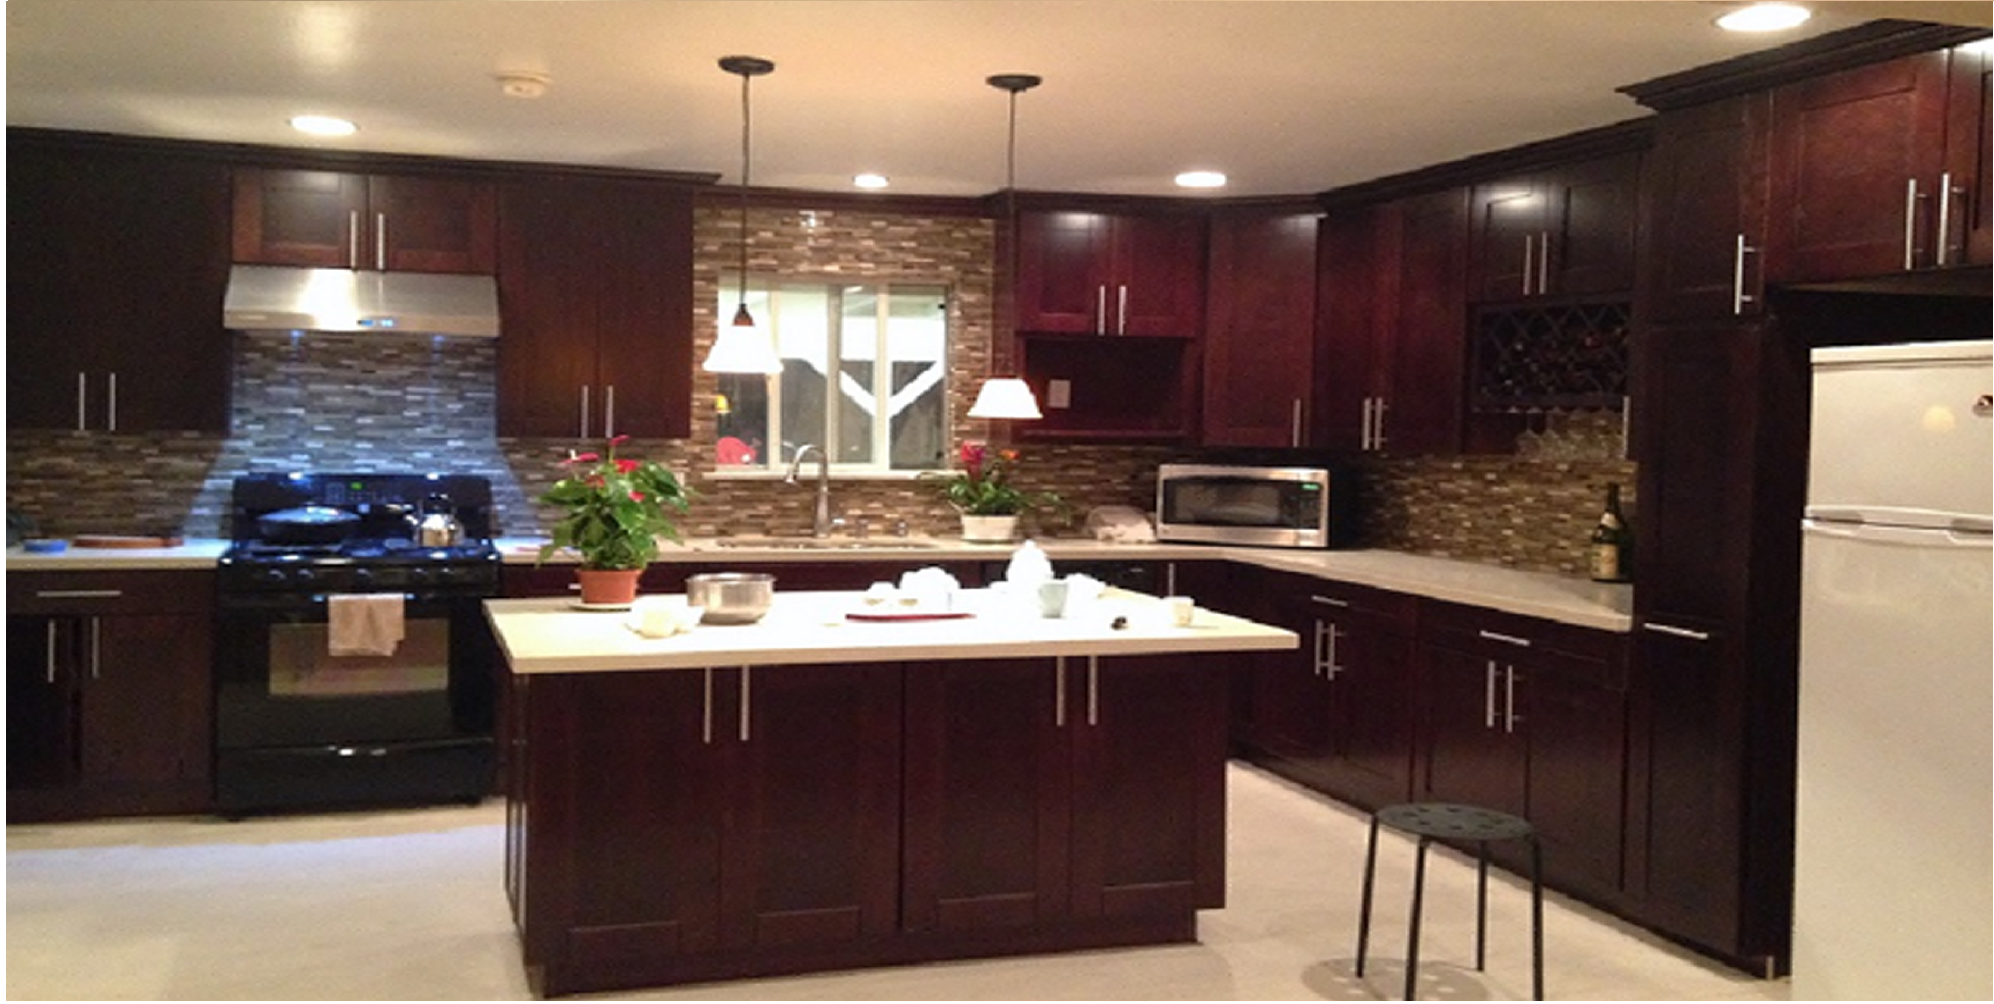 Pictures of kitchen cabinets and granite countertops - Mocha Maple Glazed